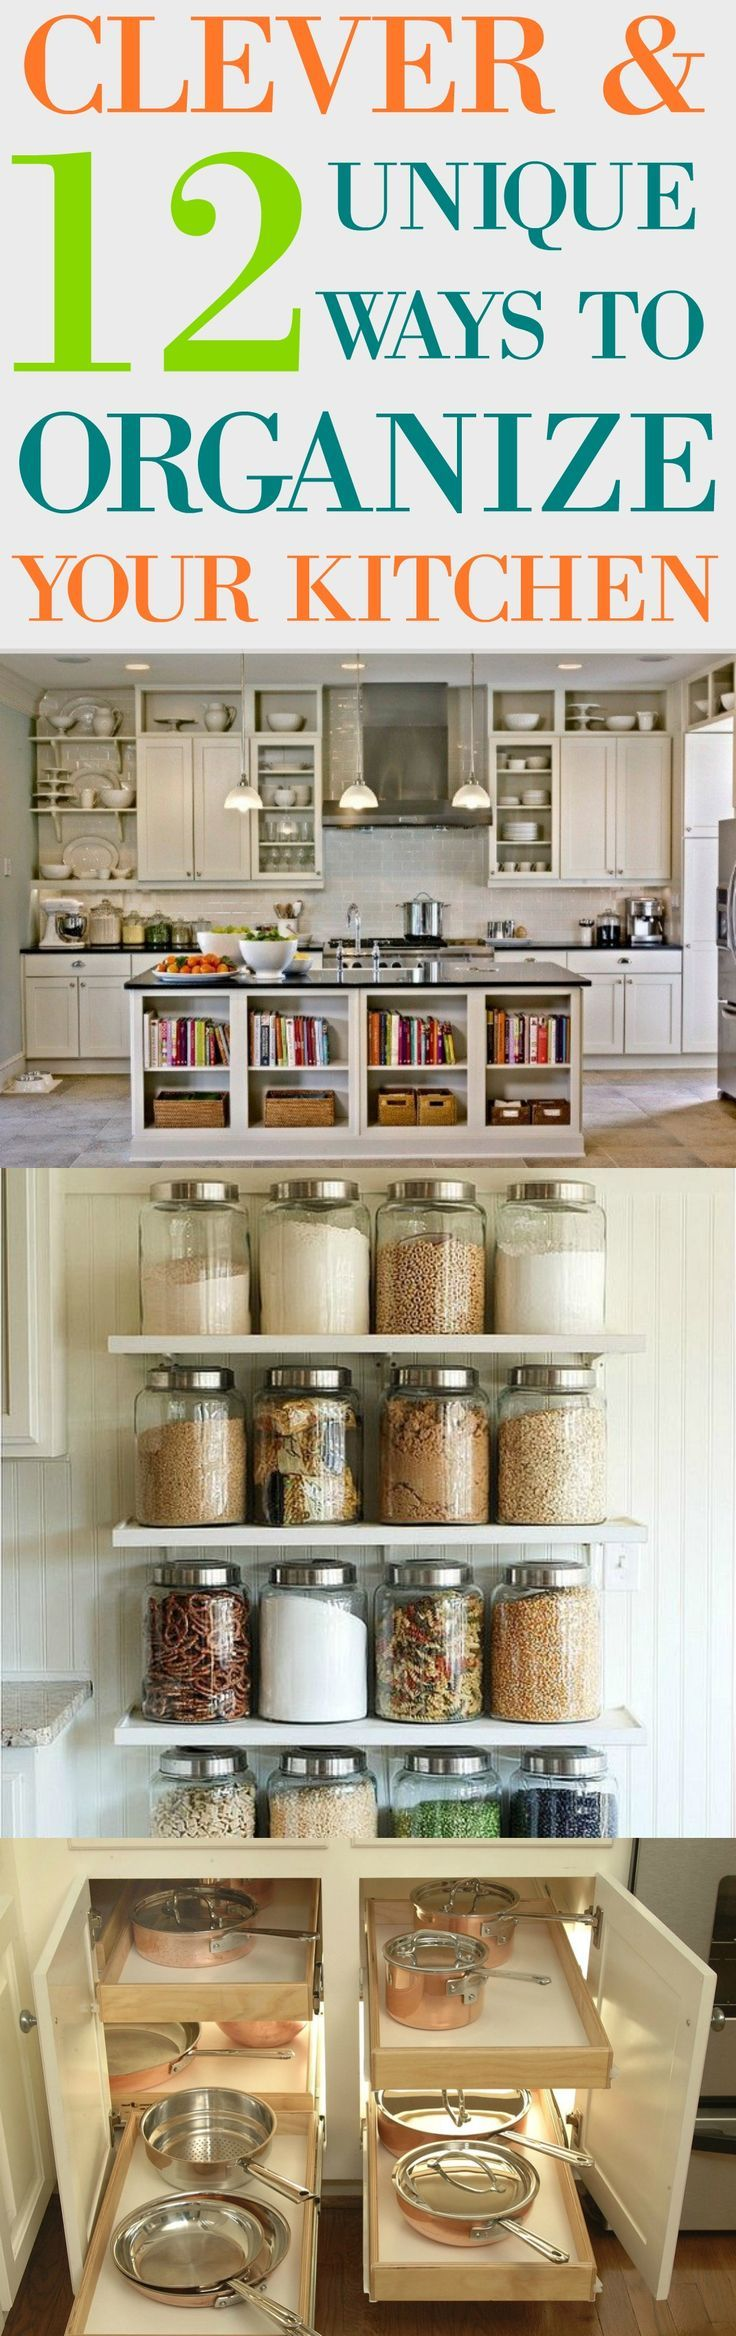 12 clever unique ways to organize your kitchen beautiful and kitchens. Black Bedroom Furniture Sets. Home Design Ideas